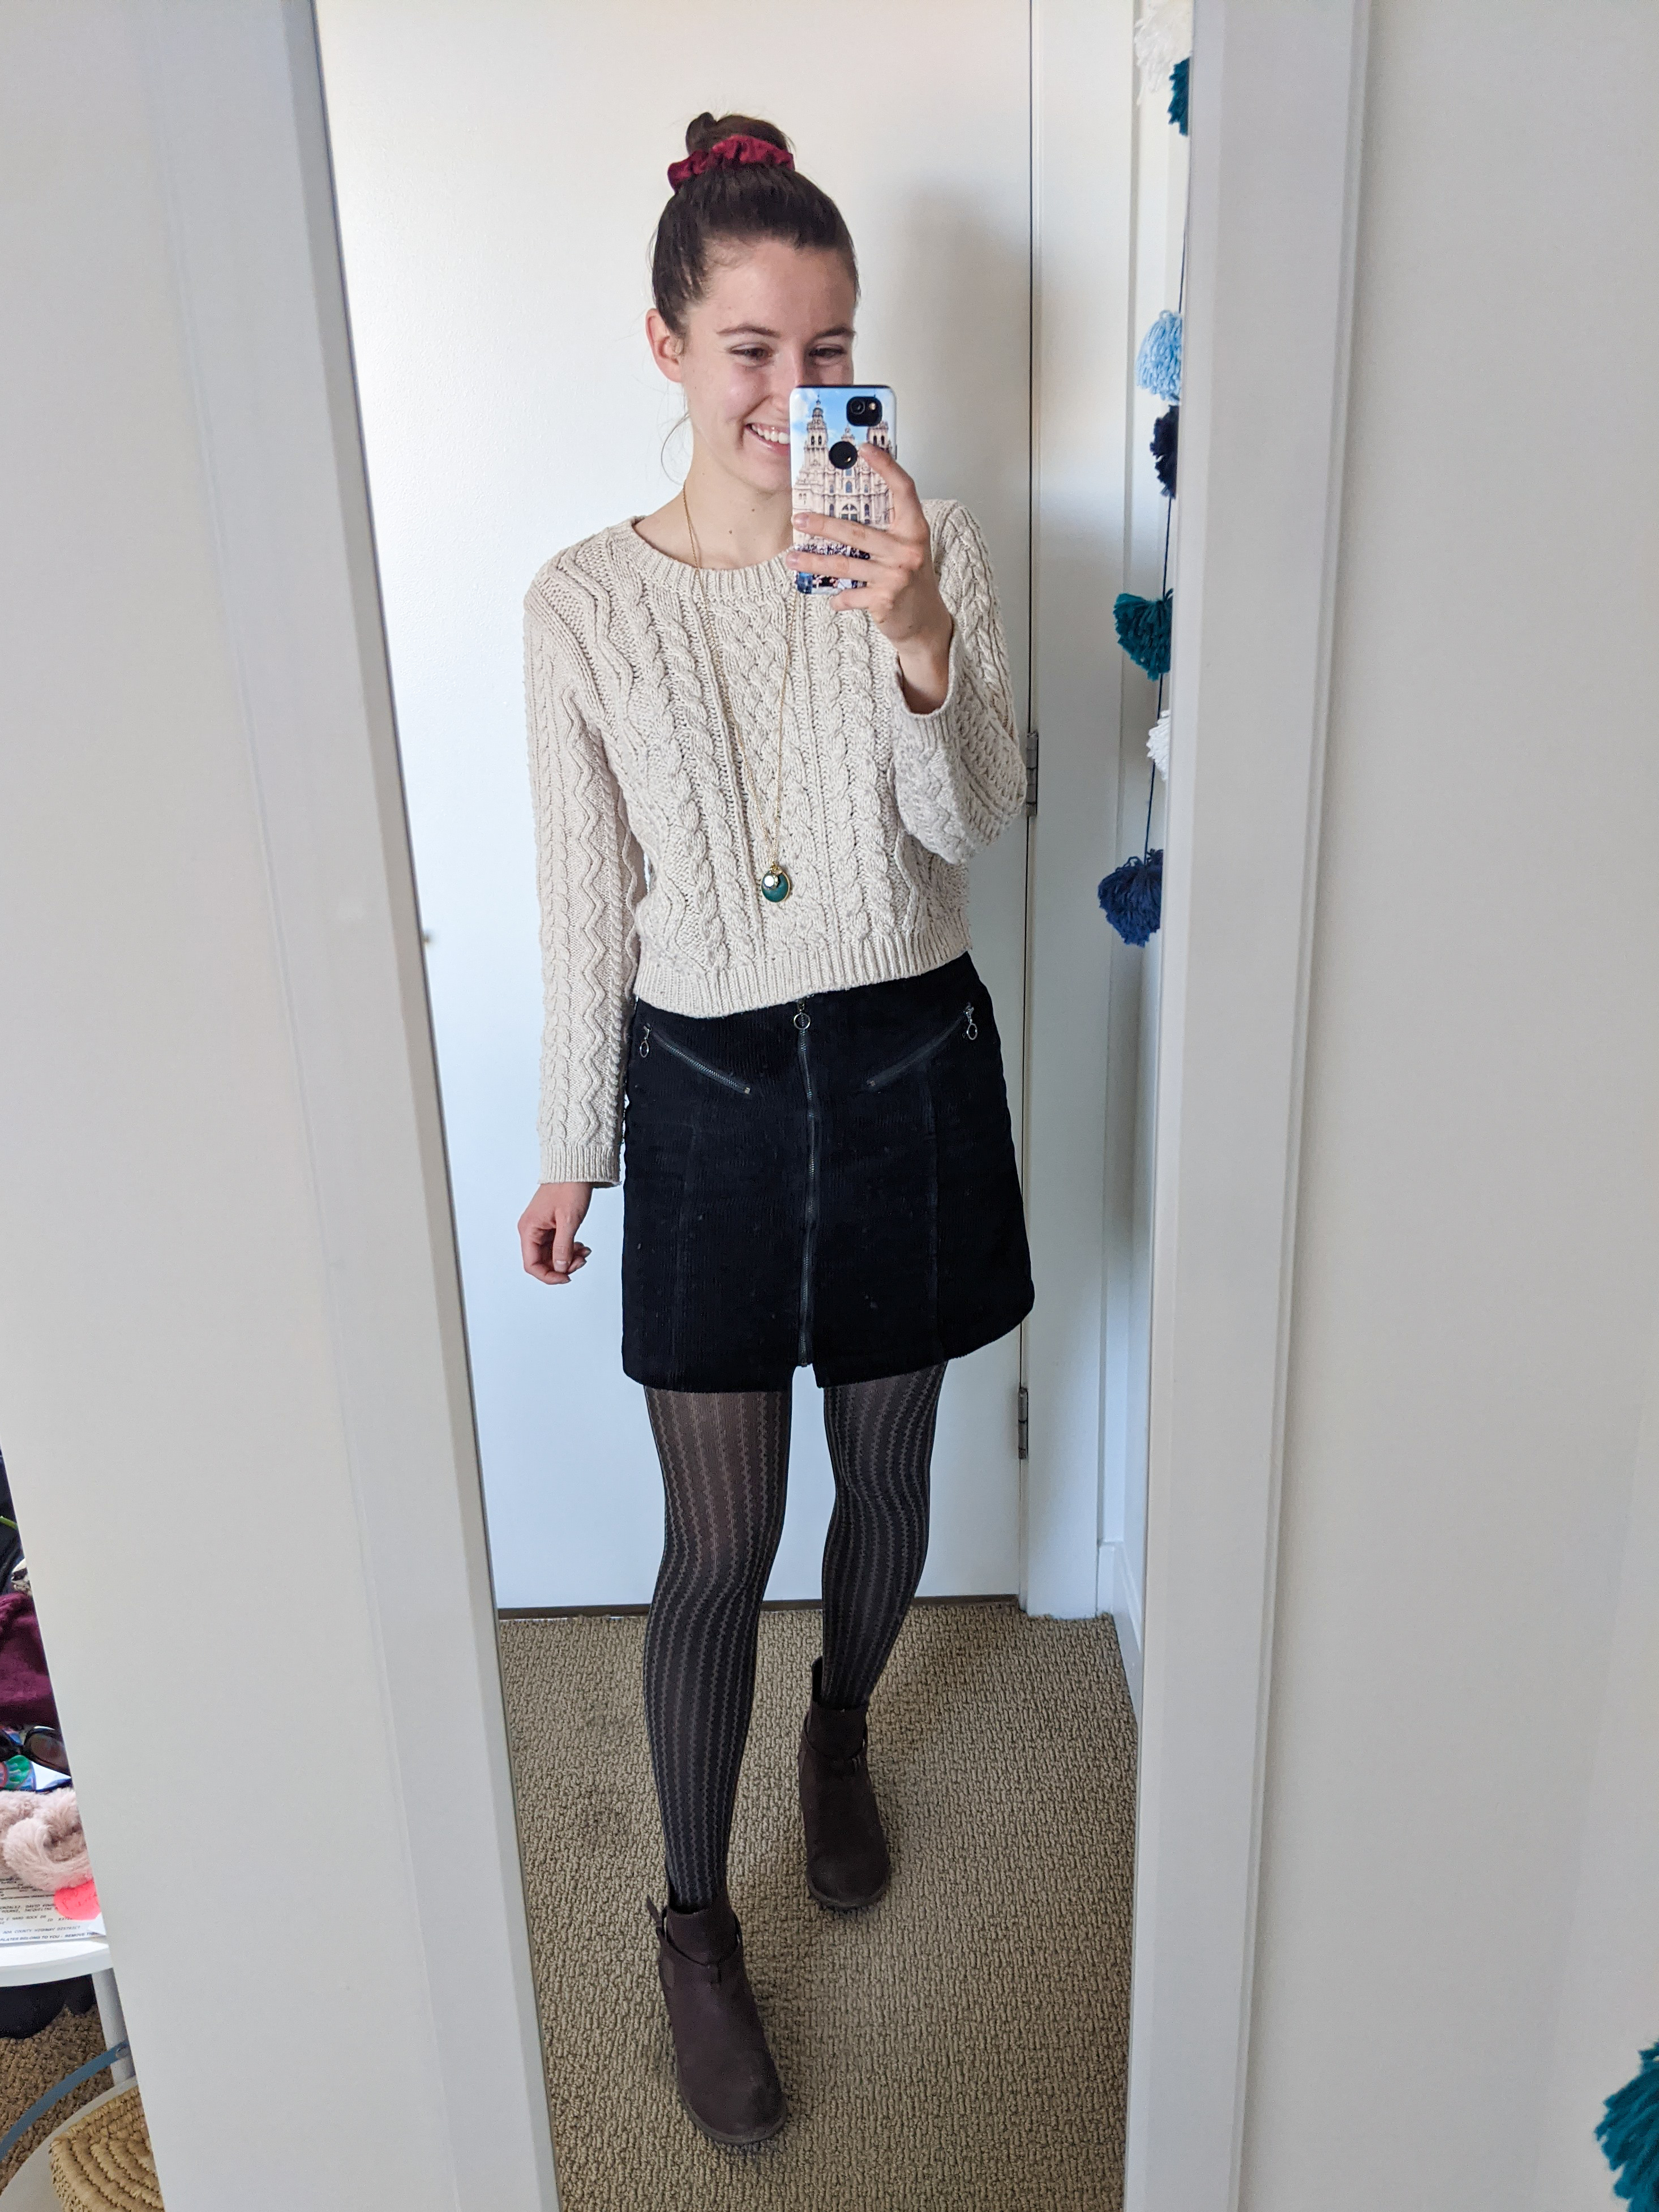 beige-sweater-cableknit-black-corduroy-skirt-patterned-tights